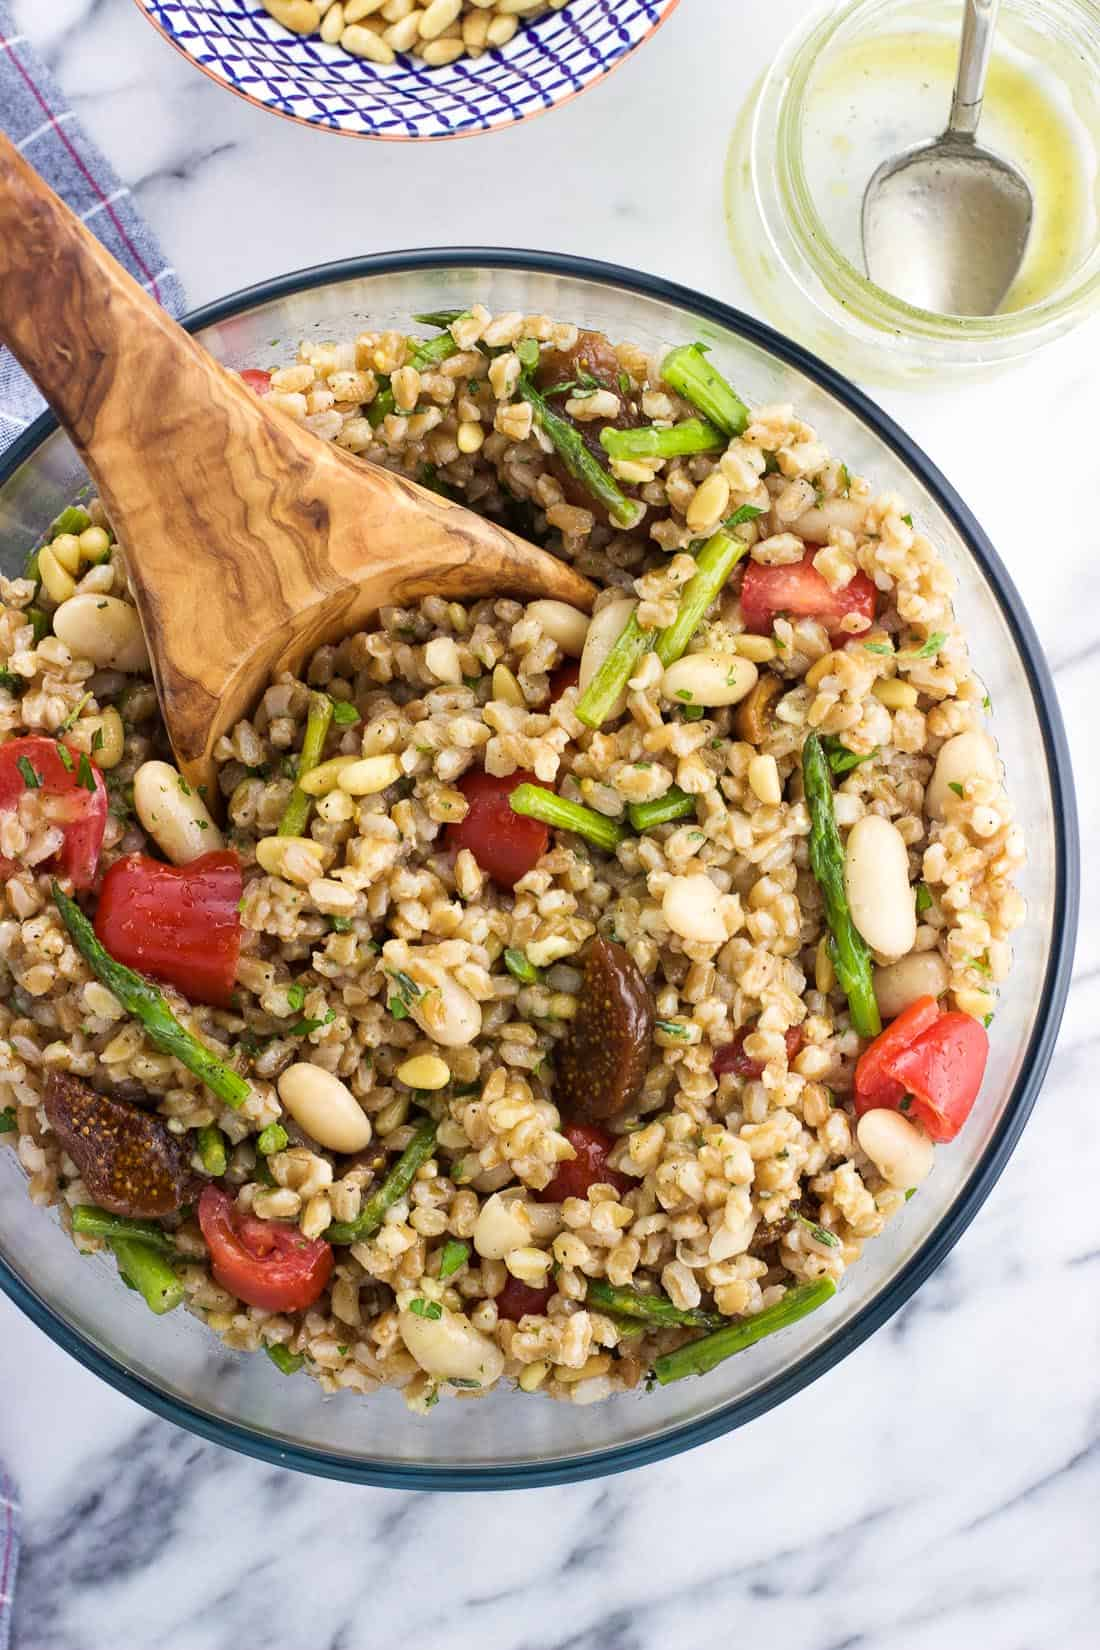 An overhead shot of the assembled farro and bean salad in a serving bowl with a wooden serving spoon